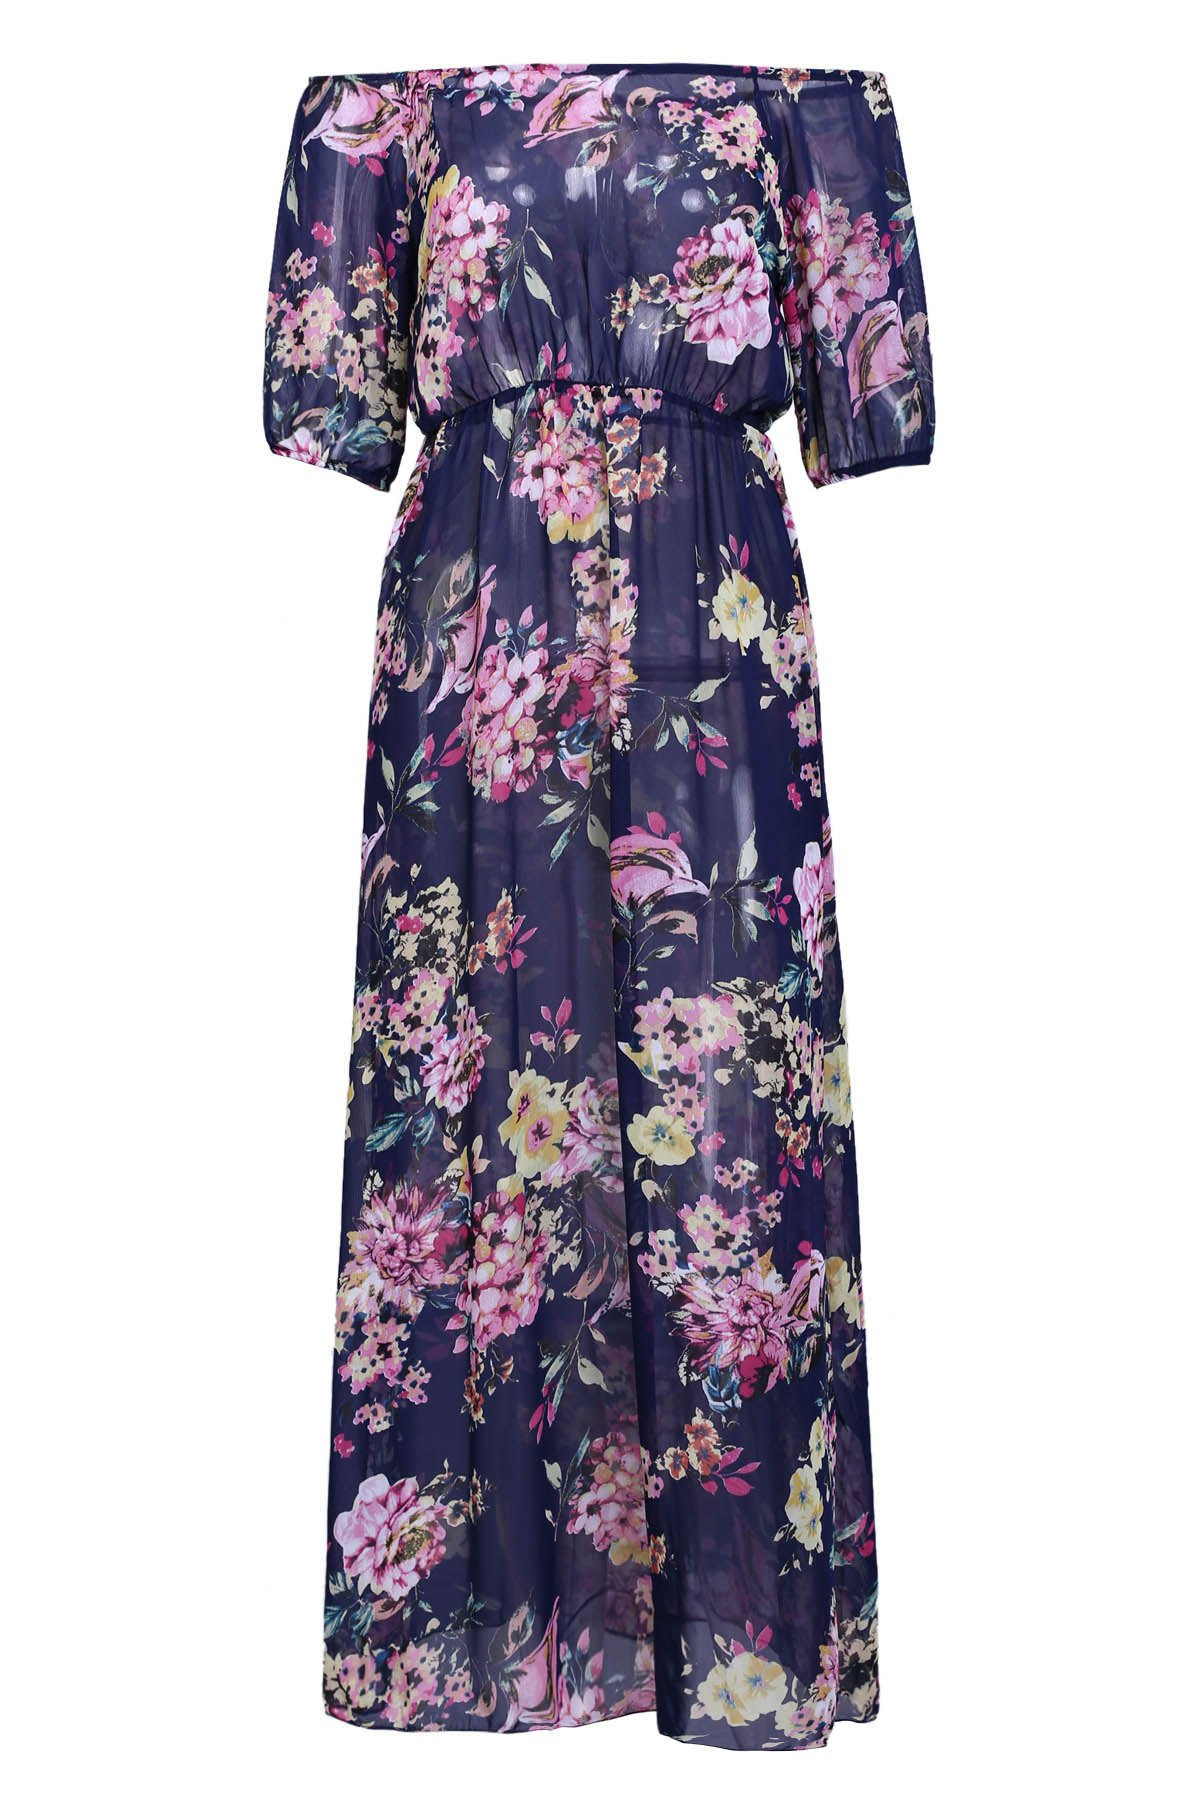 Sexy Slash Collar 3/4 Sleeve See-Through Floral Print Women's Dress - PURPLISH BLUE S